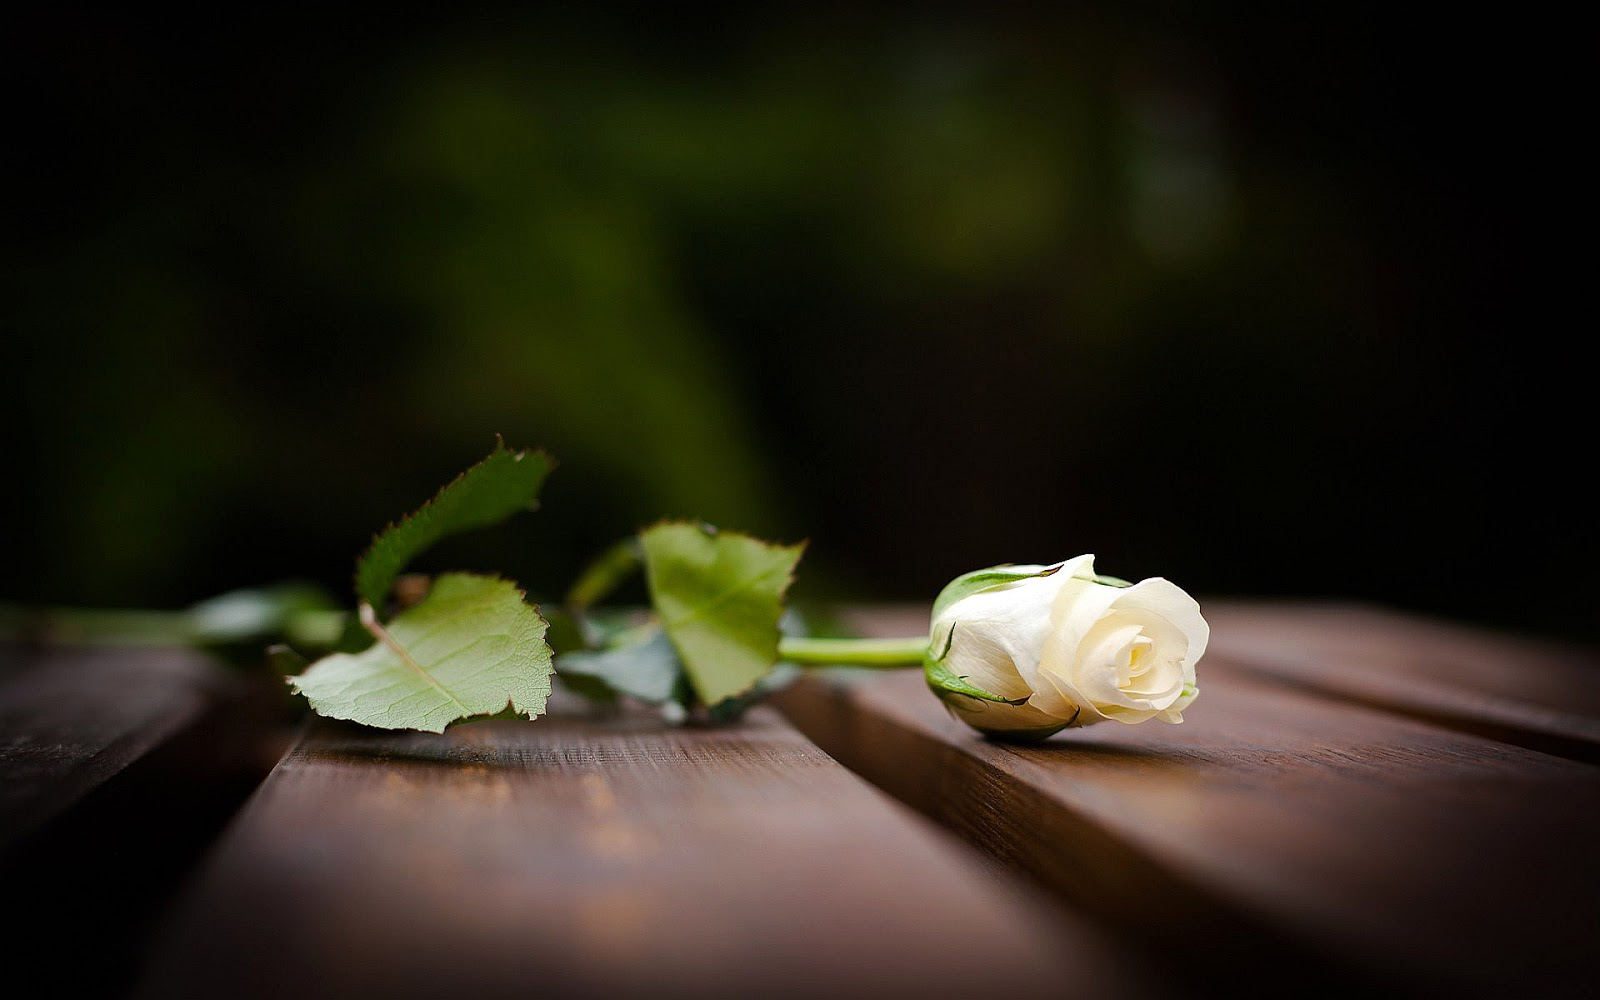 white rose backgrounds wallpapers - photo #33